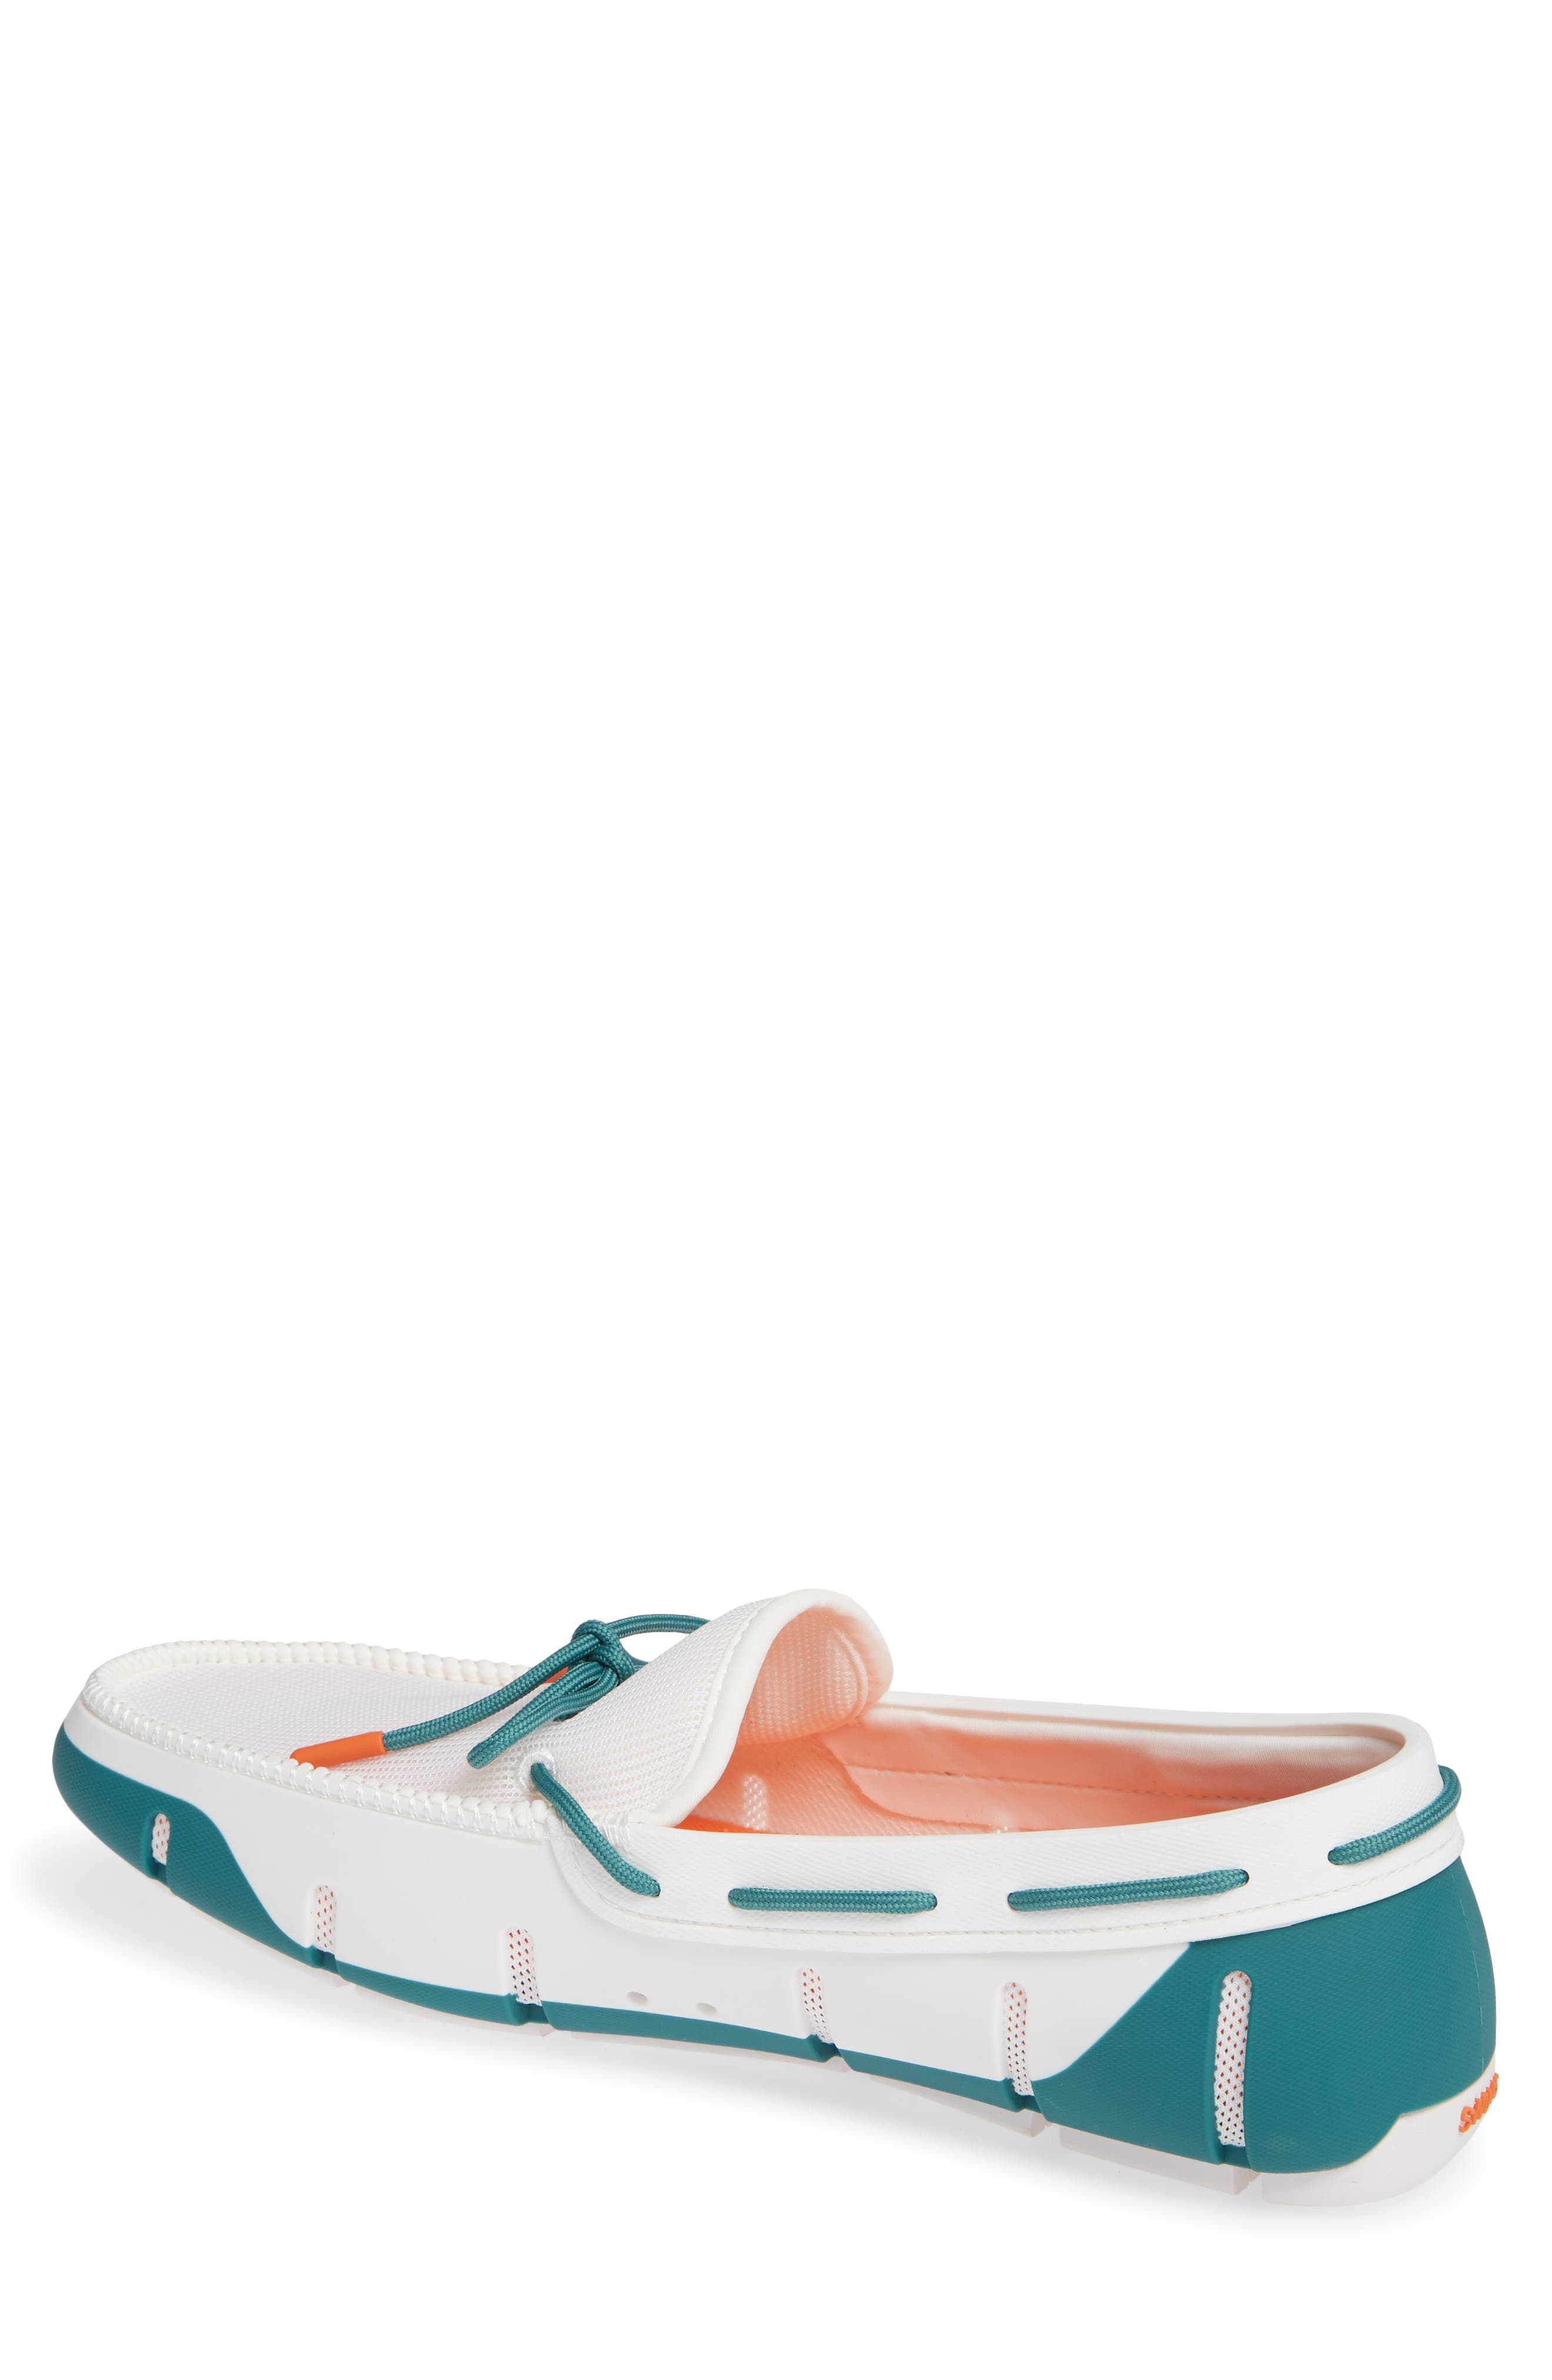 SWIMS, Stride Lace Loafer, Alternate thumbnail 2, color, 100